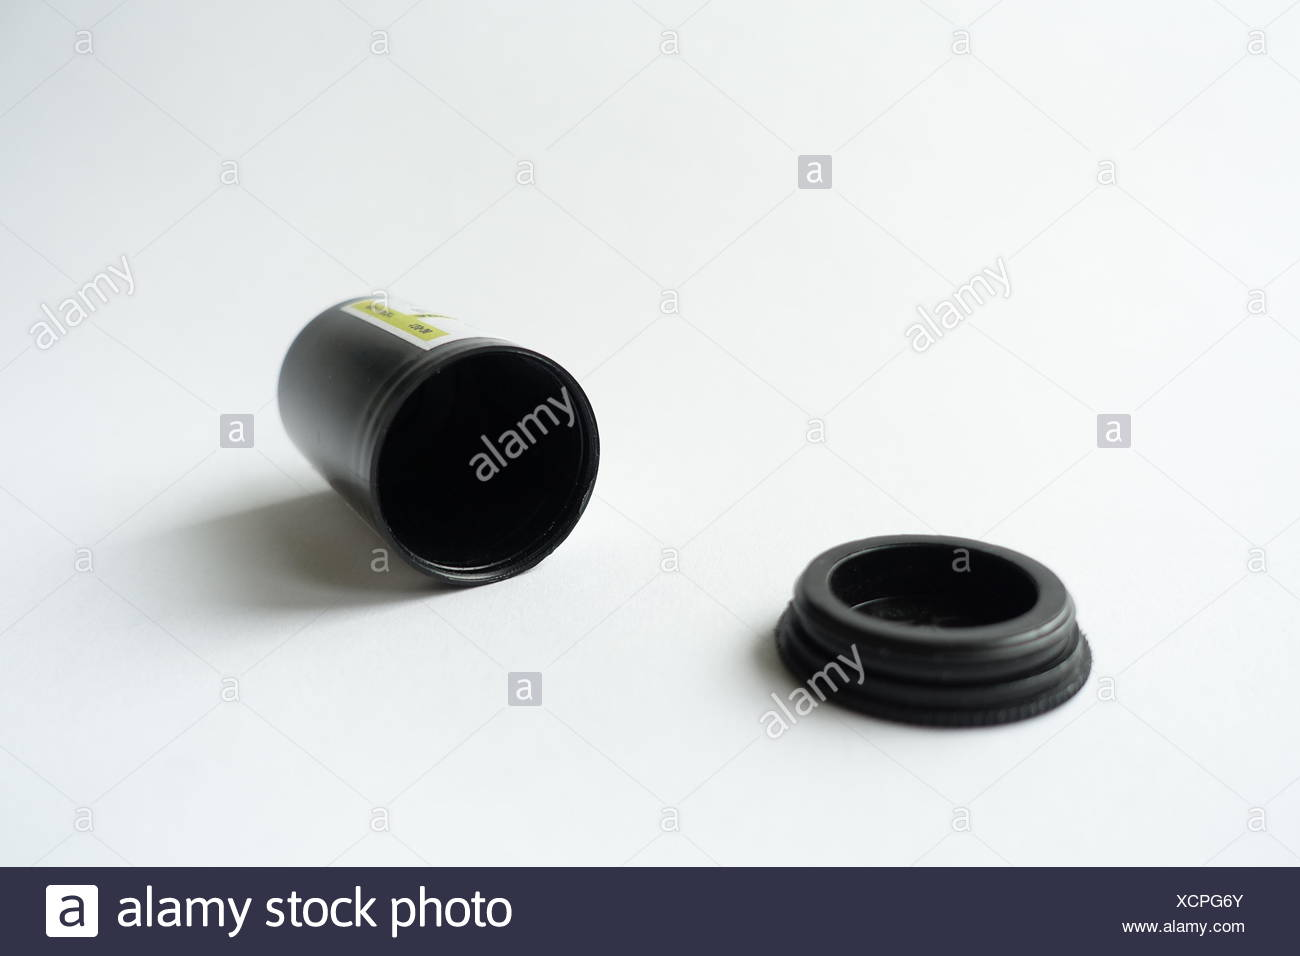 Close-Up Of Empty Film Canister On White Table - Stock Image